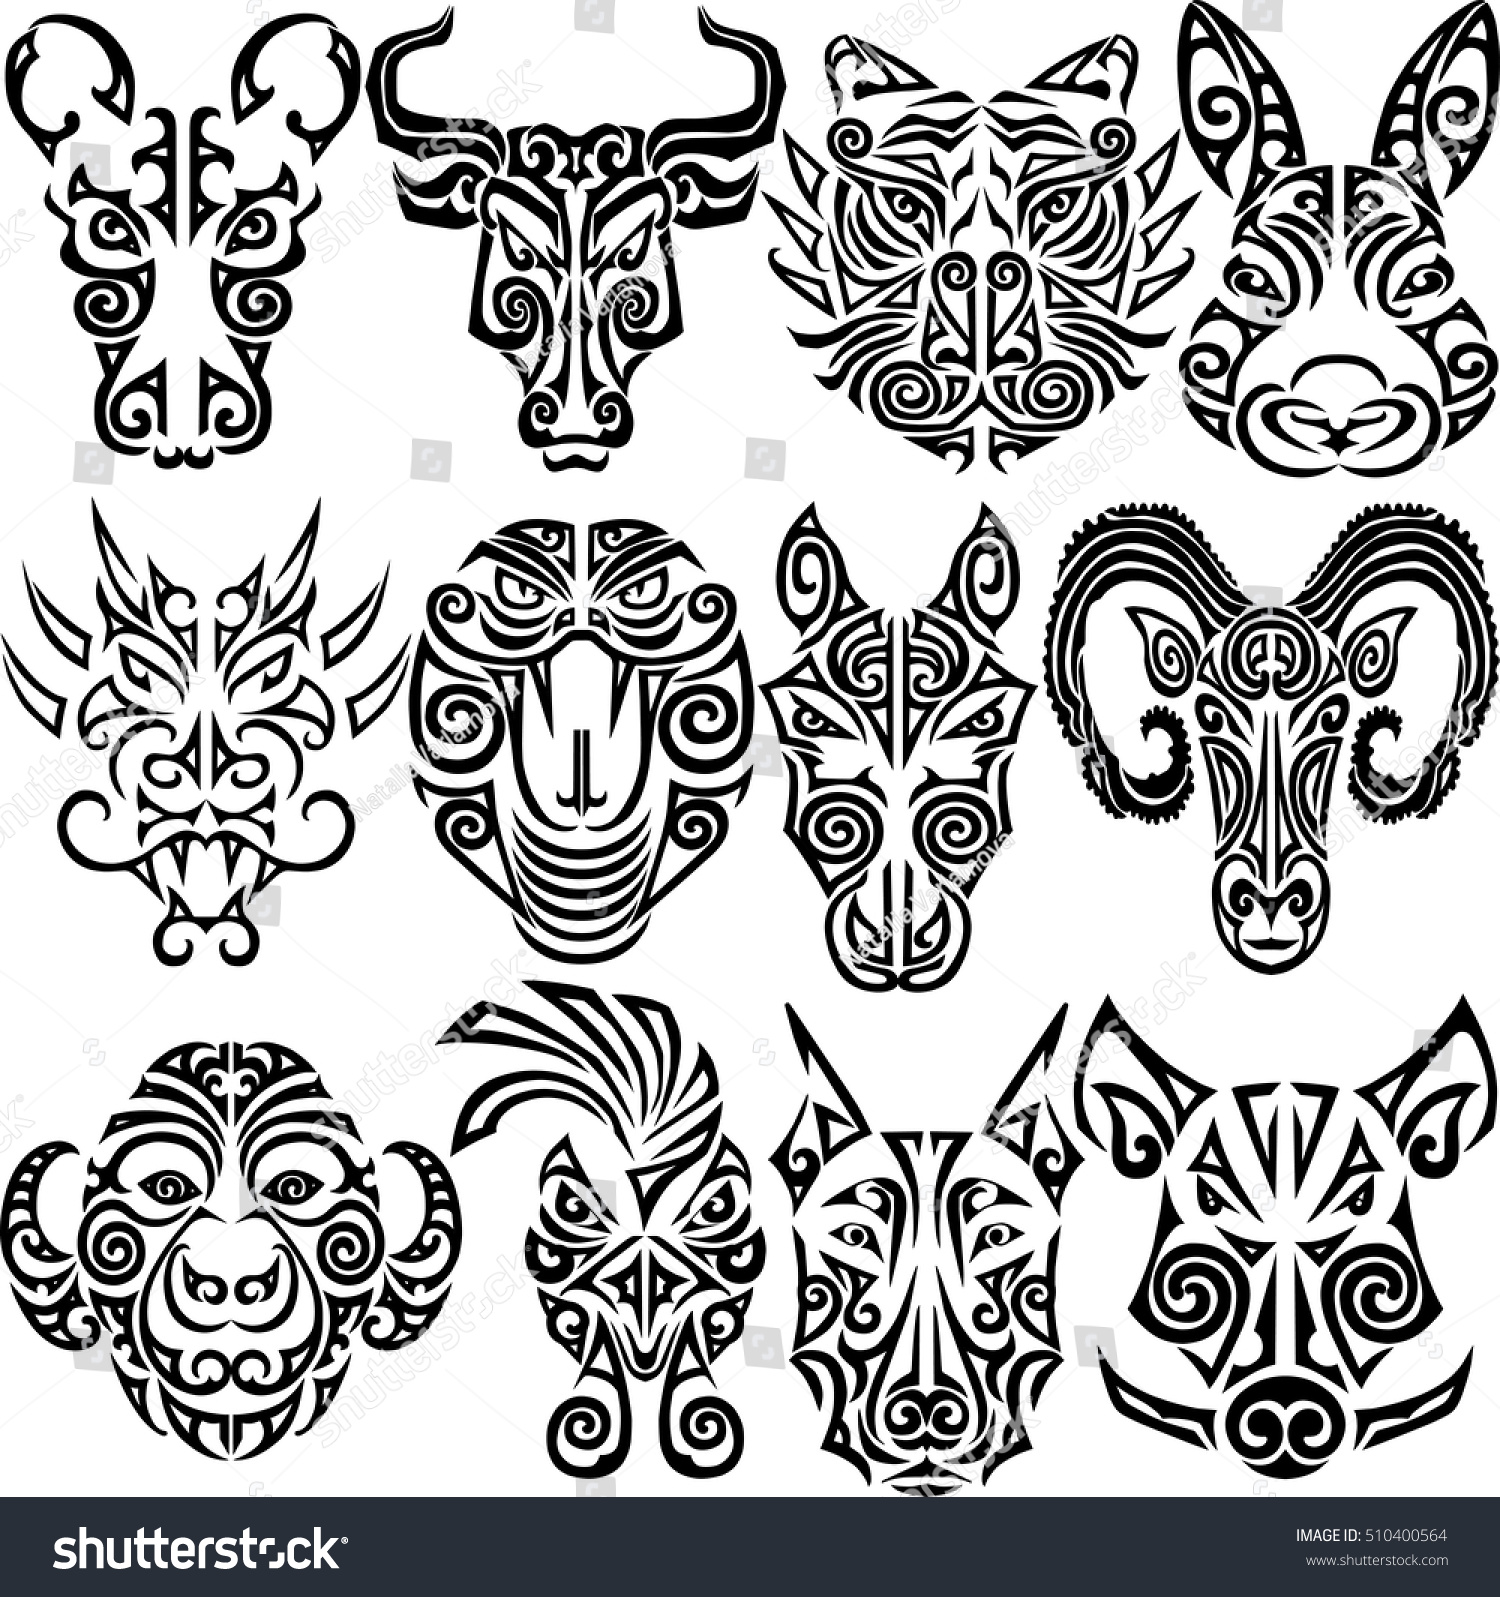 chinese zodiac signs set rat ox stock vector 510400564 shutterstock. Black Bedroom Furniture Sets. Home Design Ideas